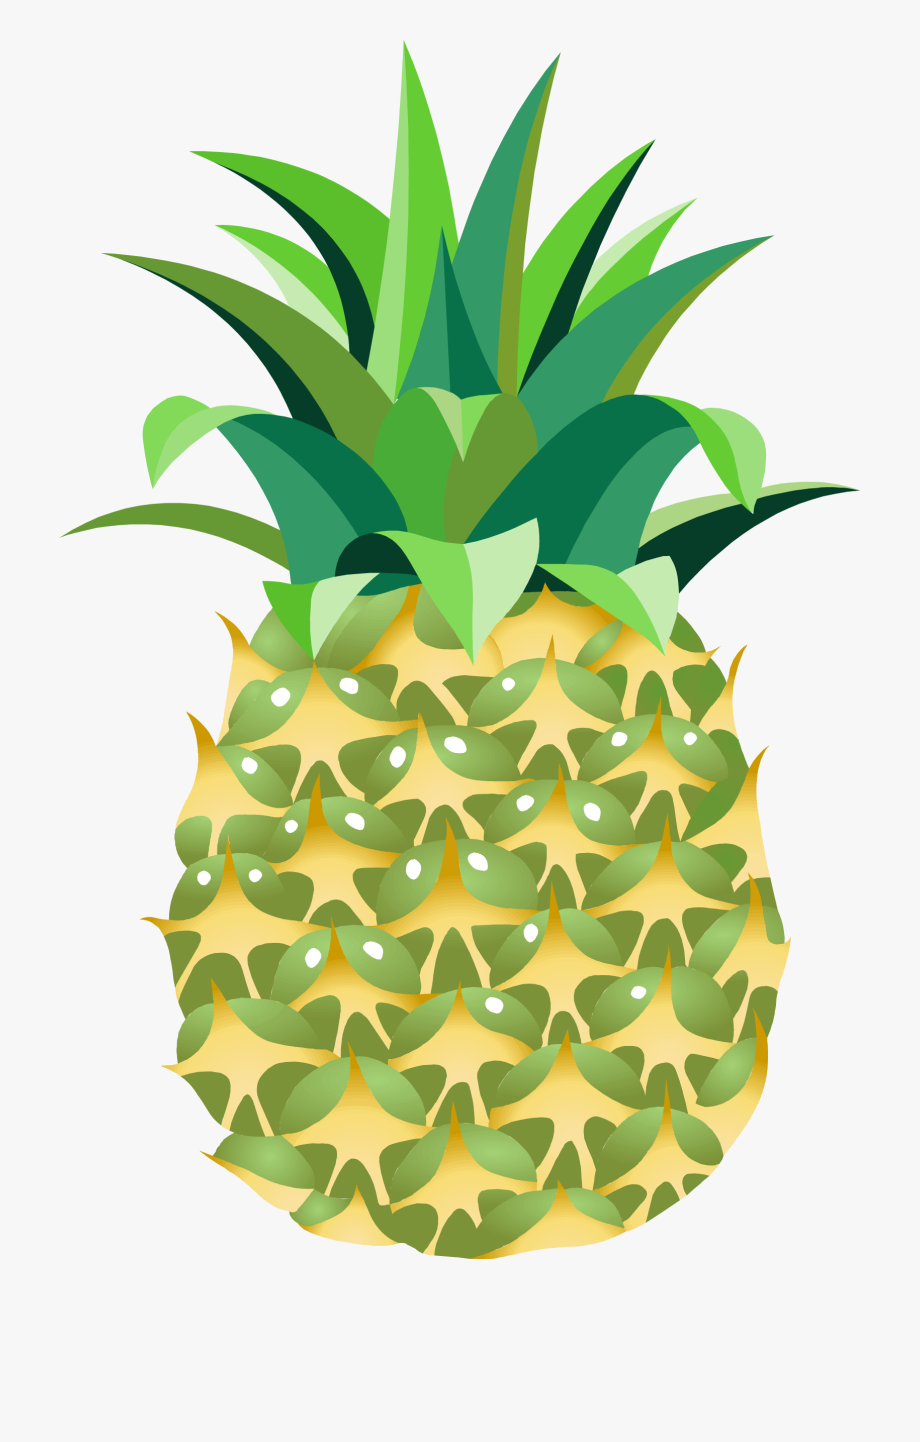 Clipart pineapple high quality. Png clip art transparent